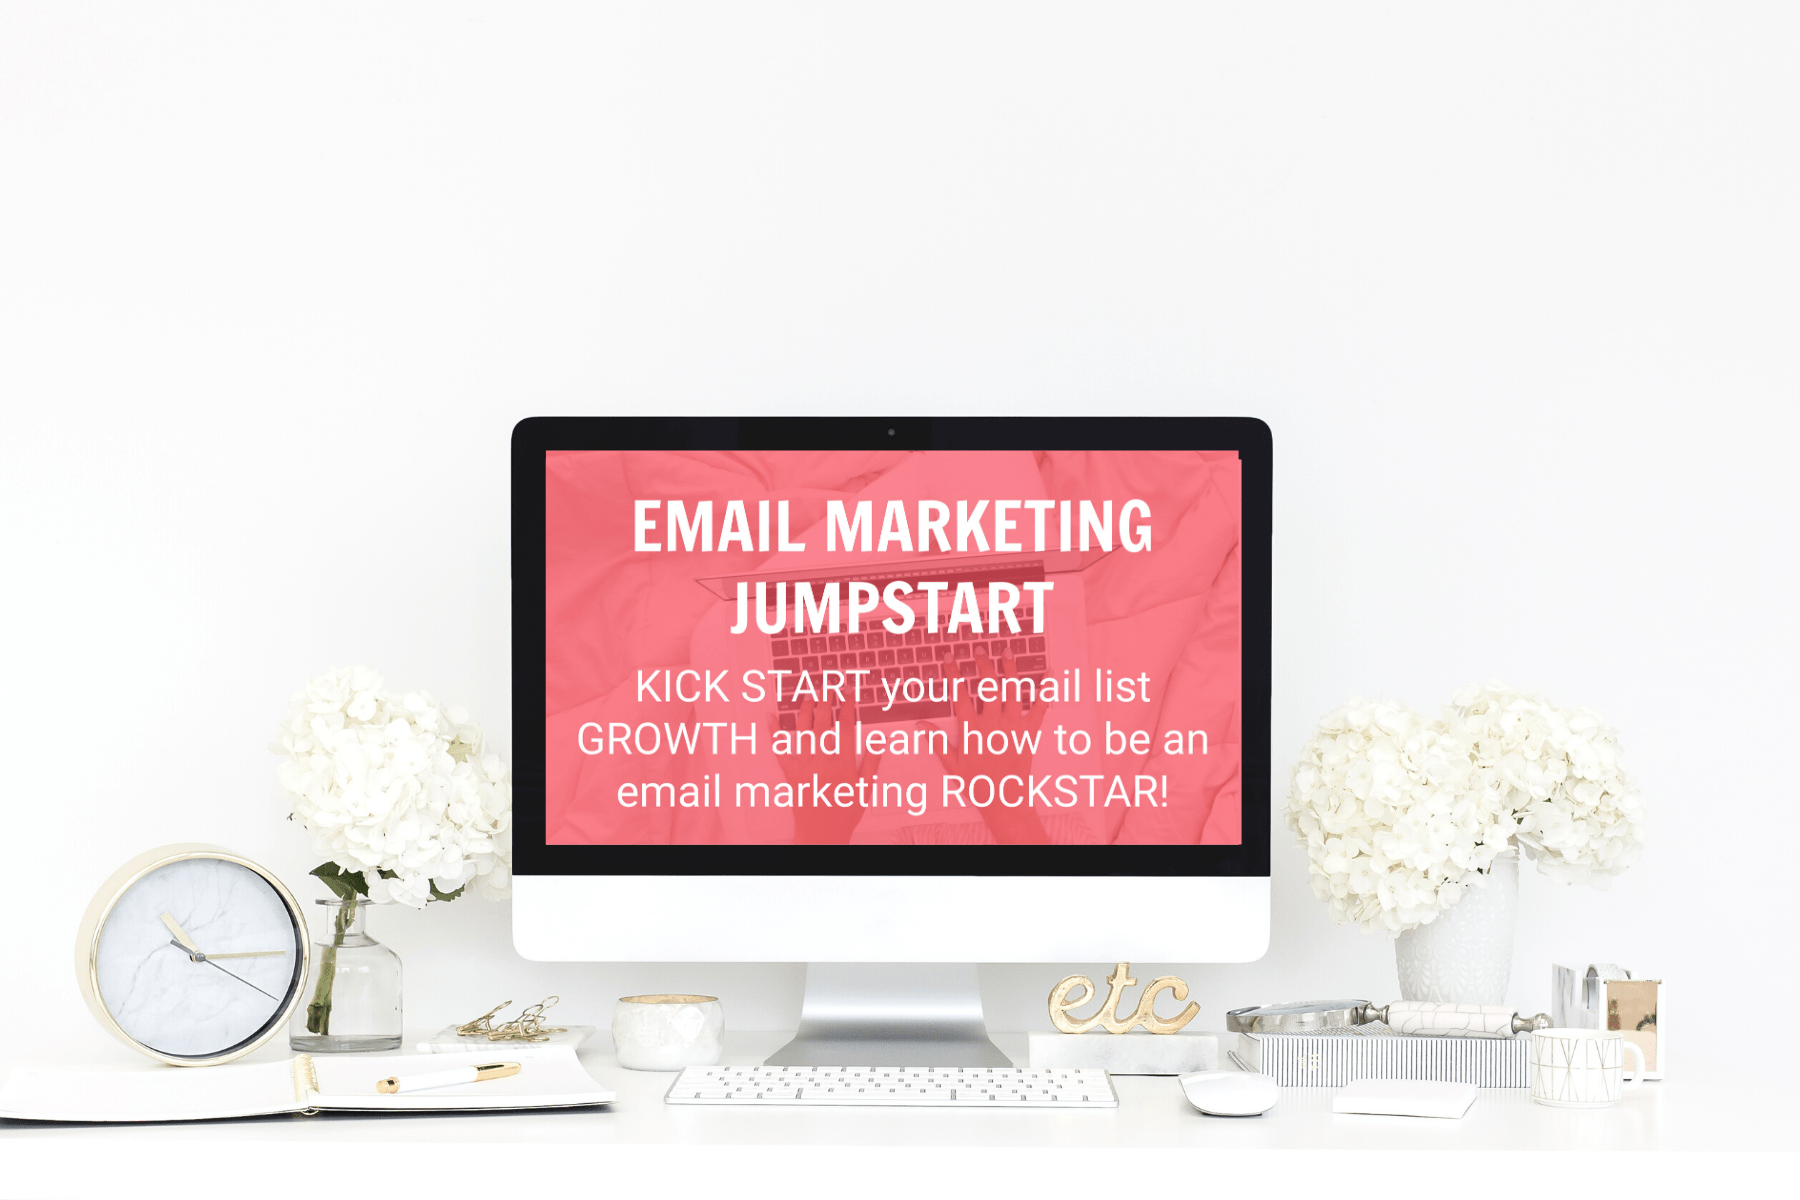 Email Marketing Jumpstart Course